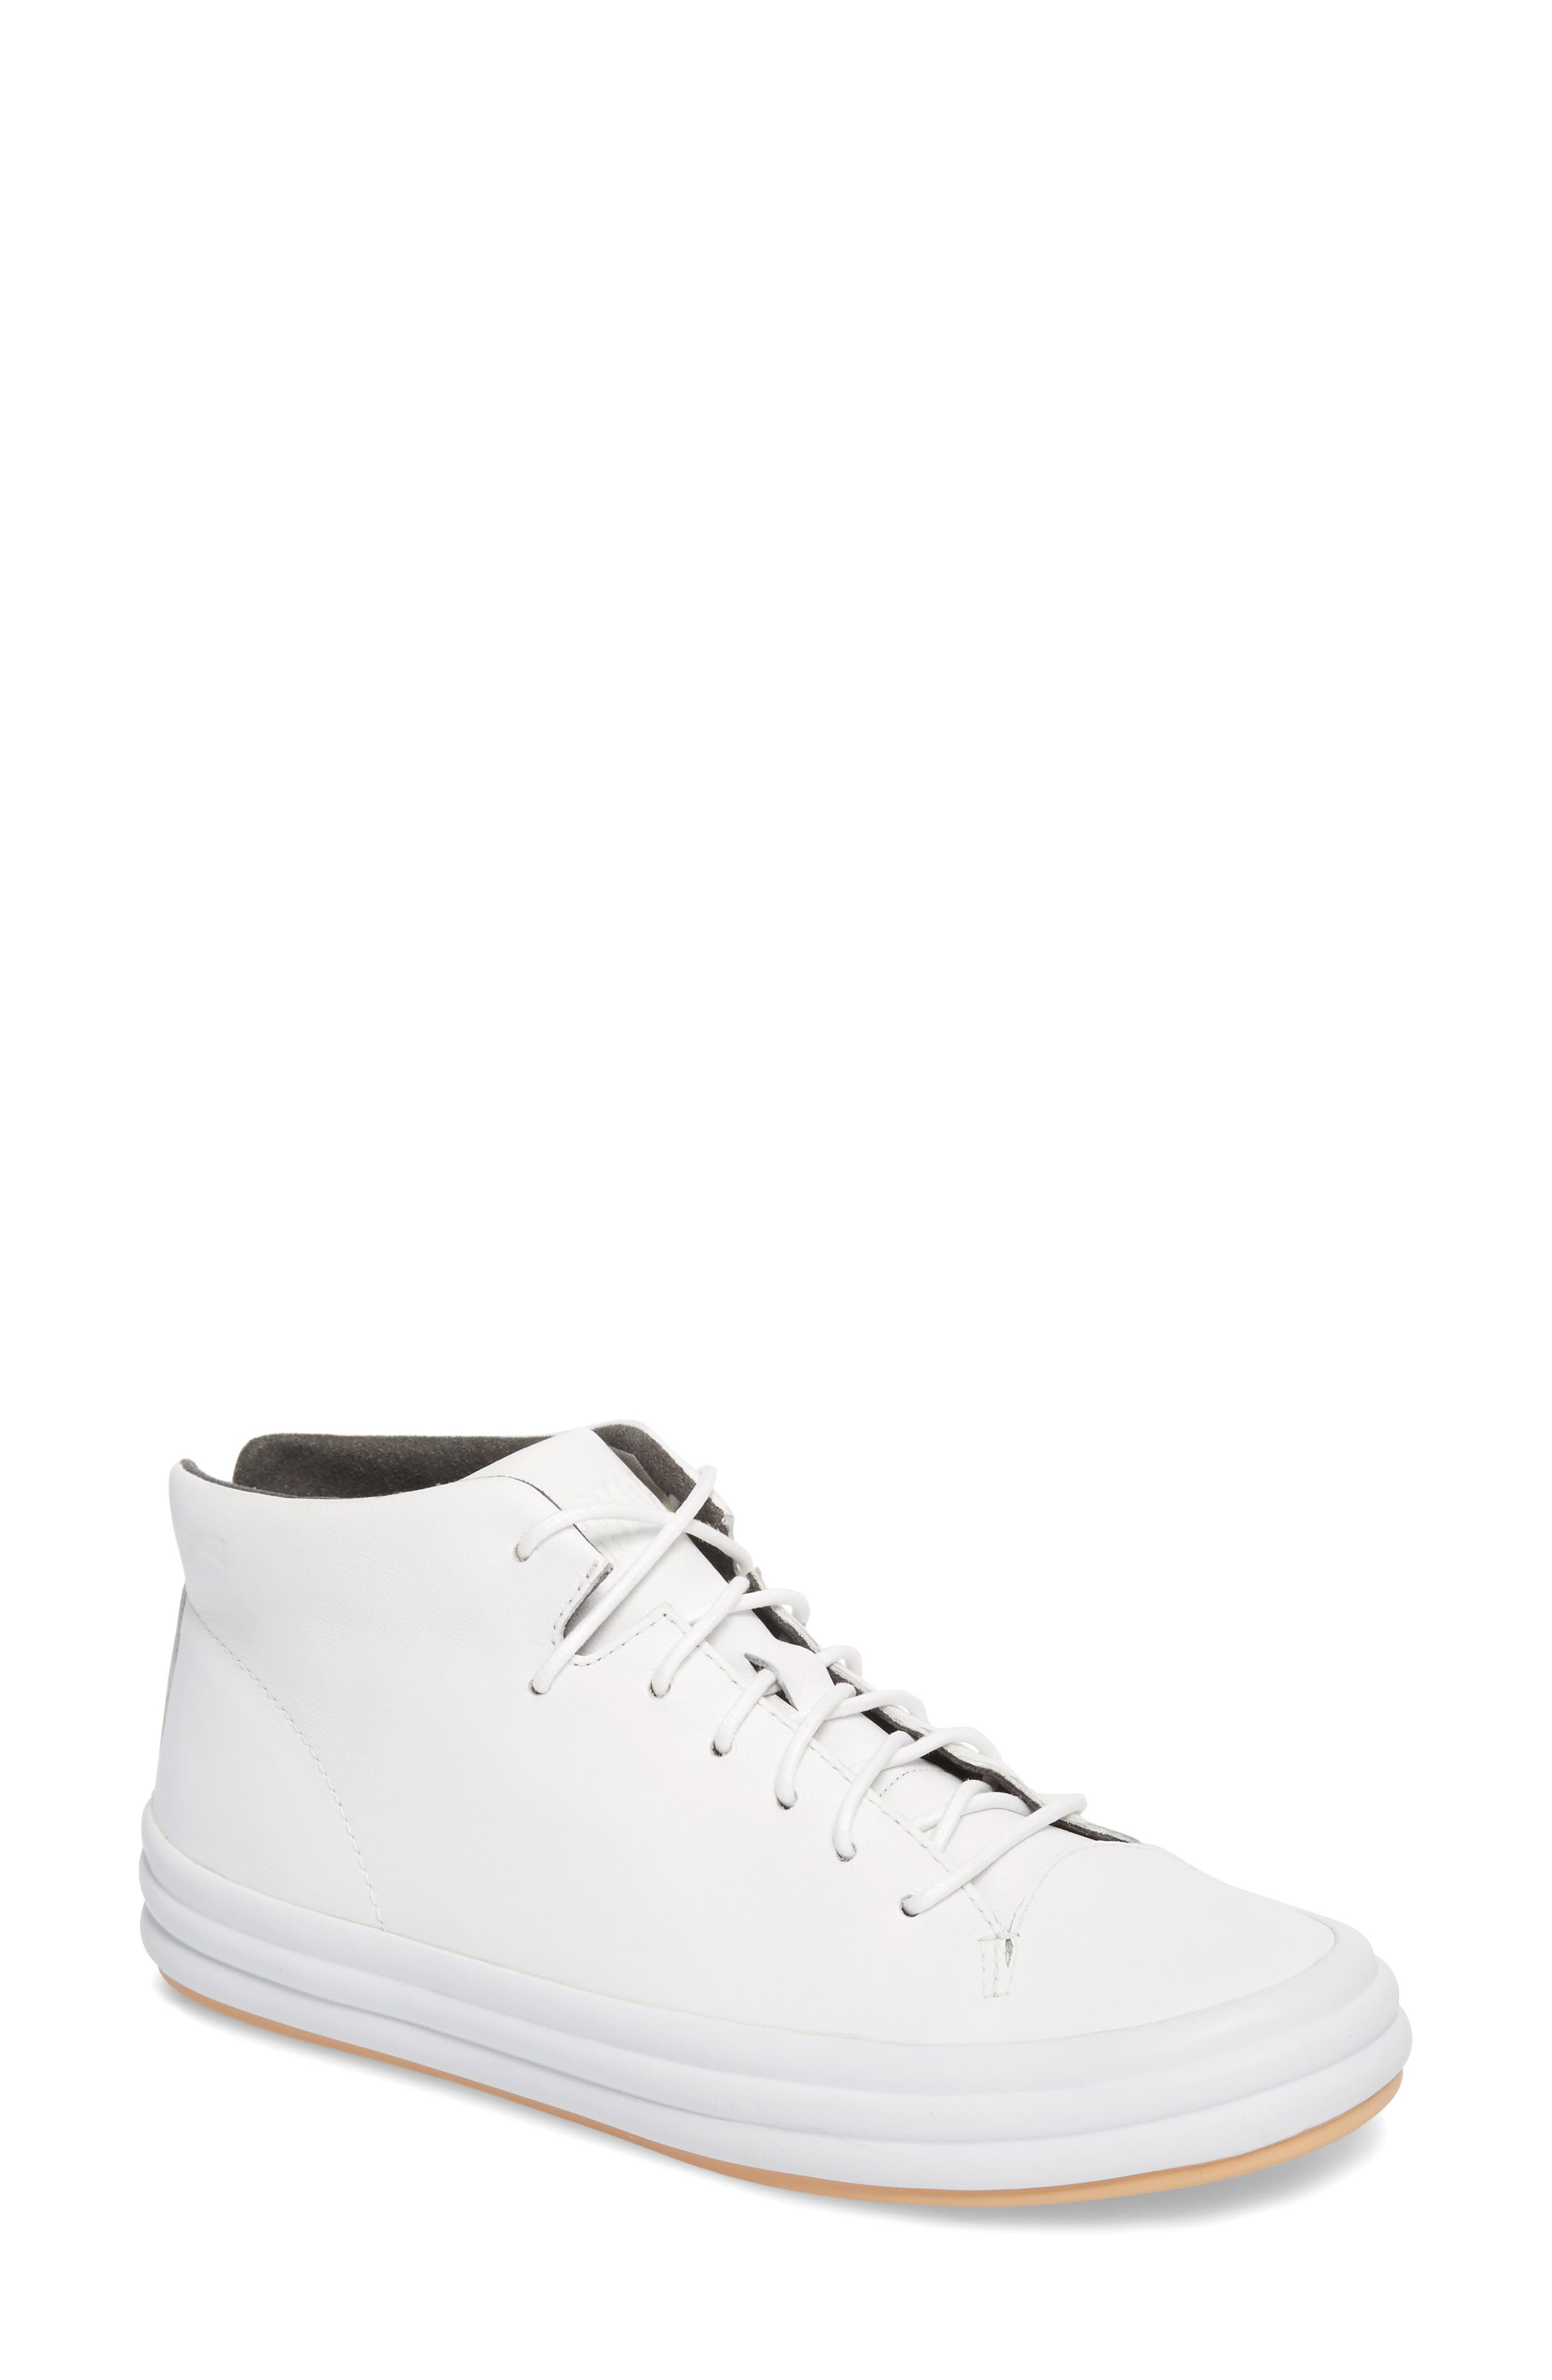 Hoops Mid Top Sneaker,                             Main thumbnail 1, color,                             White Natural Leather